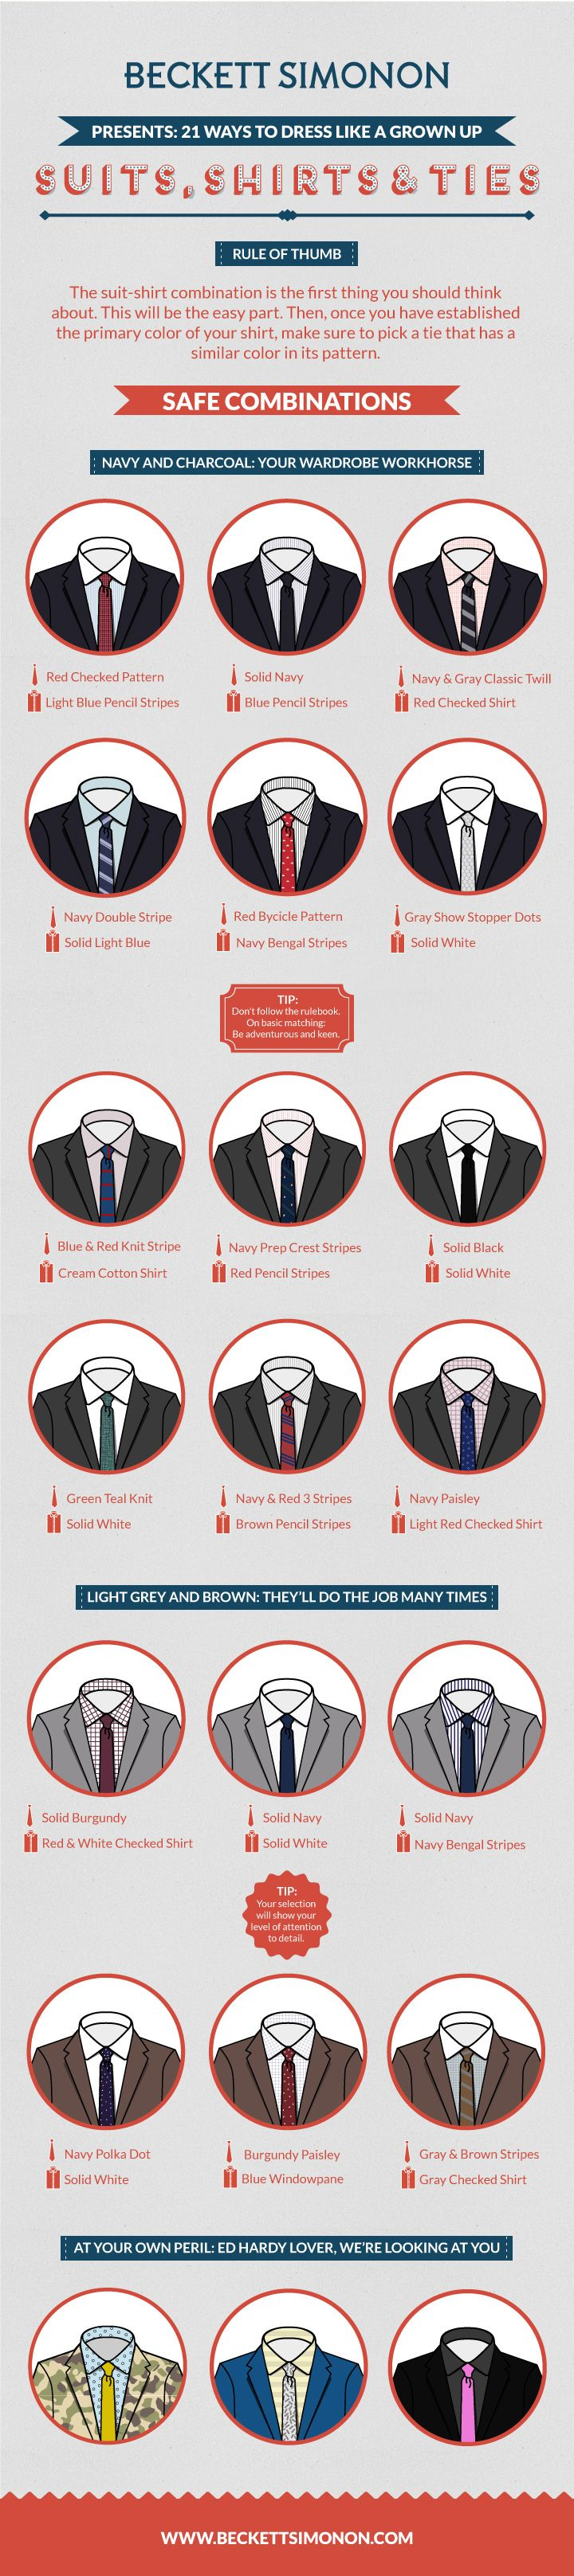 How to match suits, shirts and ties like a pro. - Beckett Simonon - Beckett Simonon